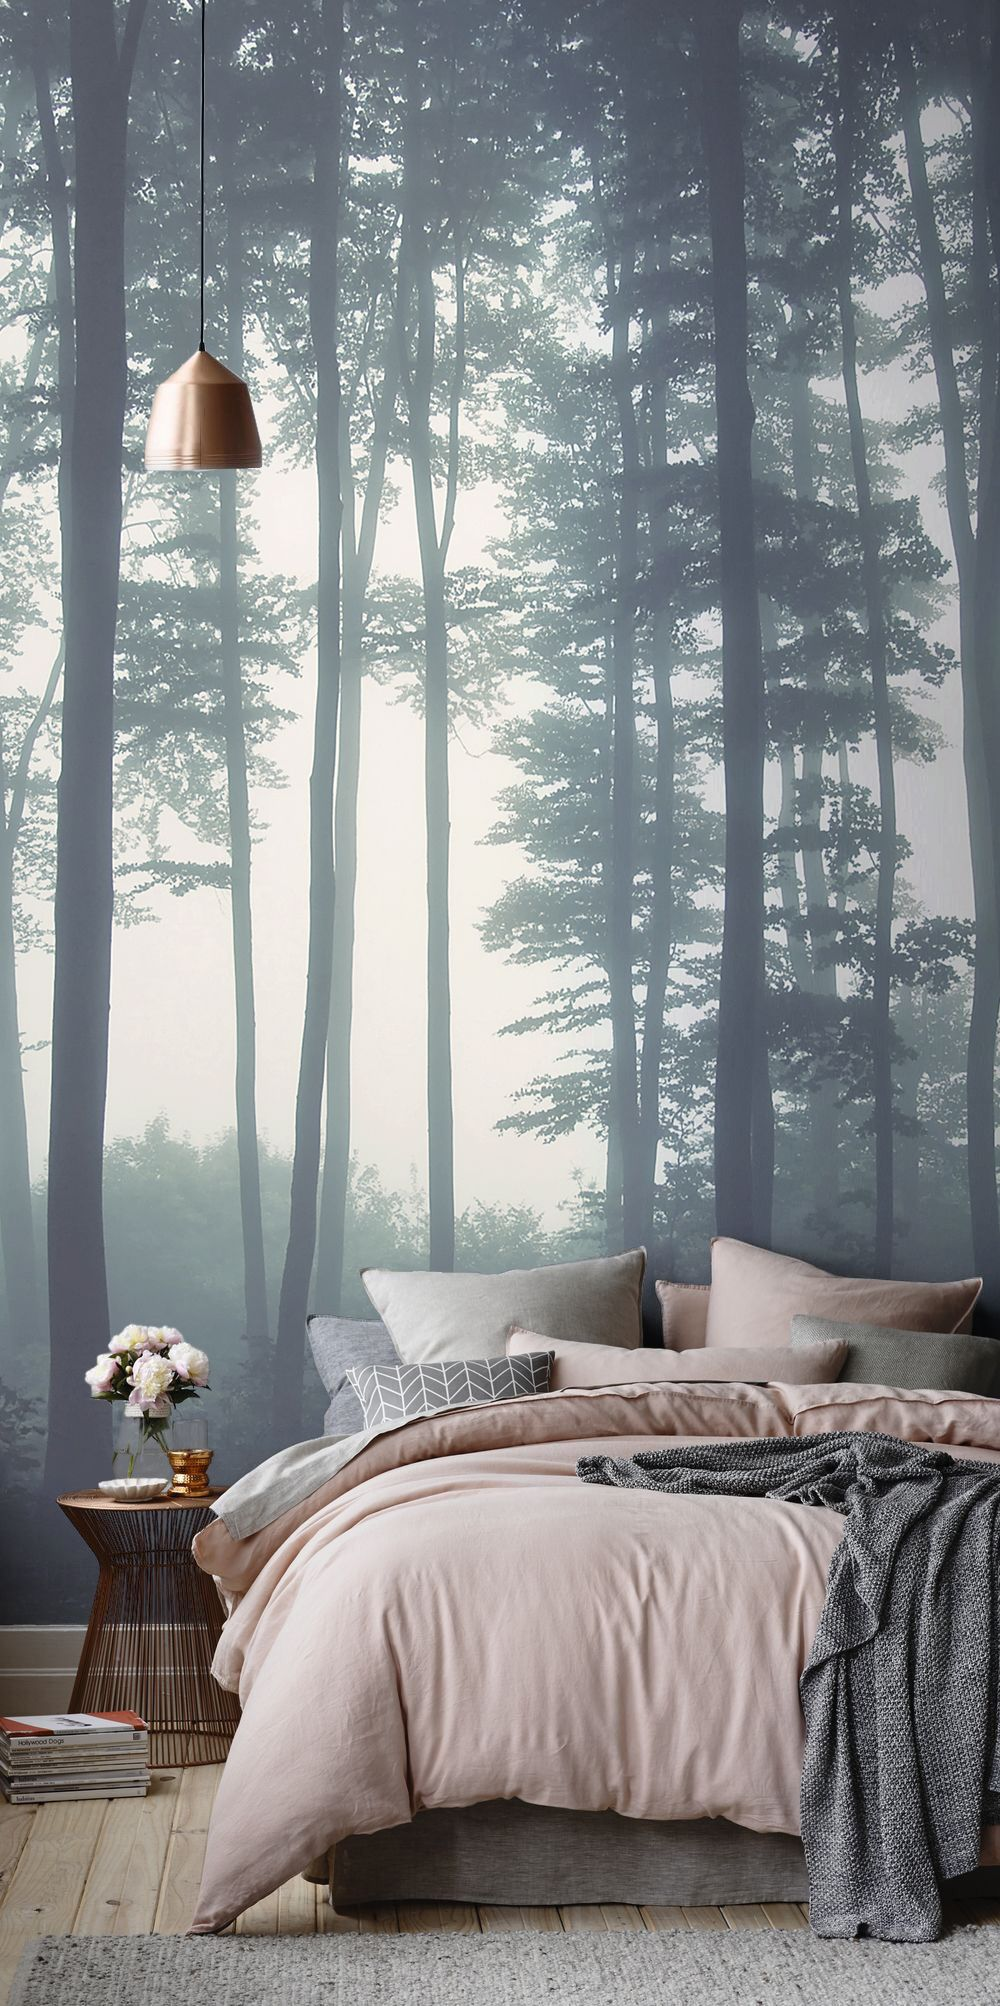 Mural Kamar Sea Of Trees Forest Mural Wallpaper Dekorasi Kamar